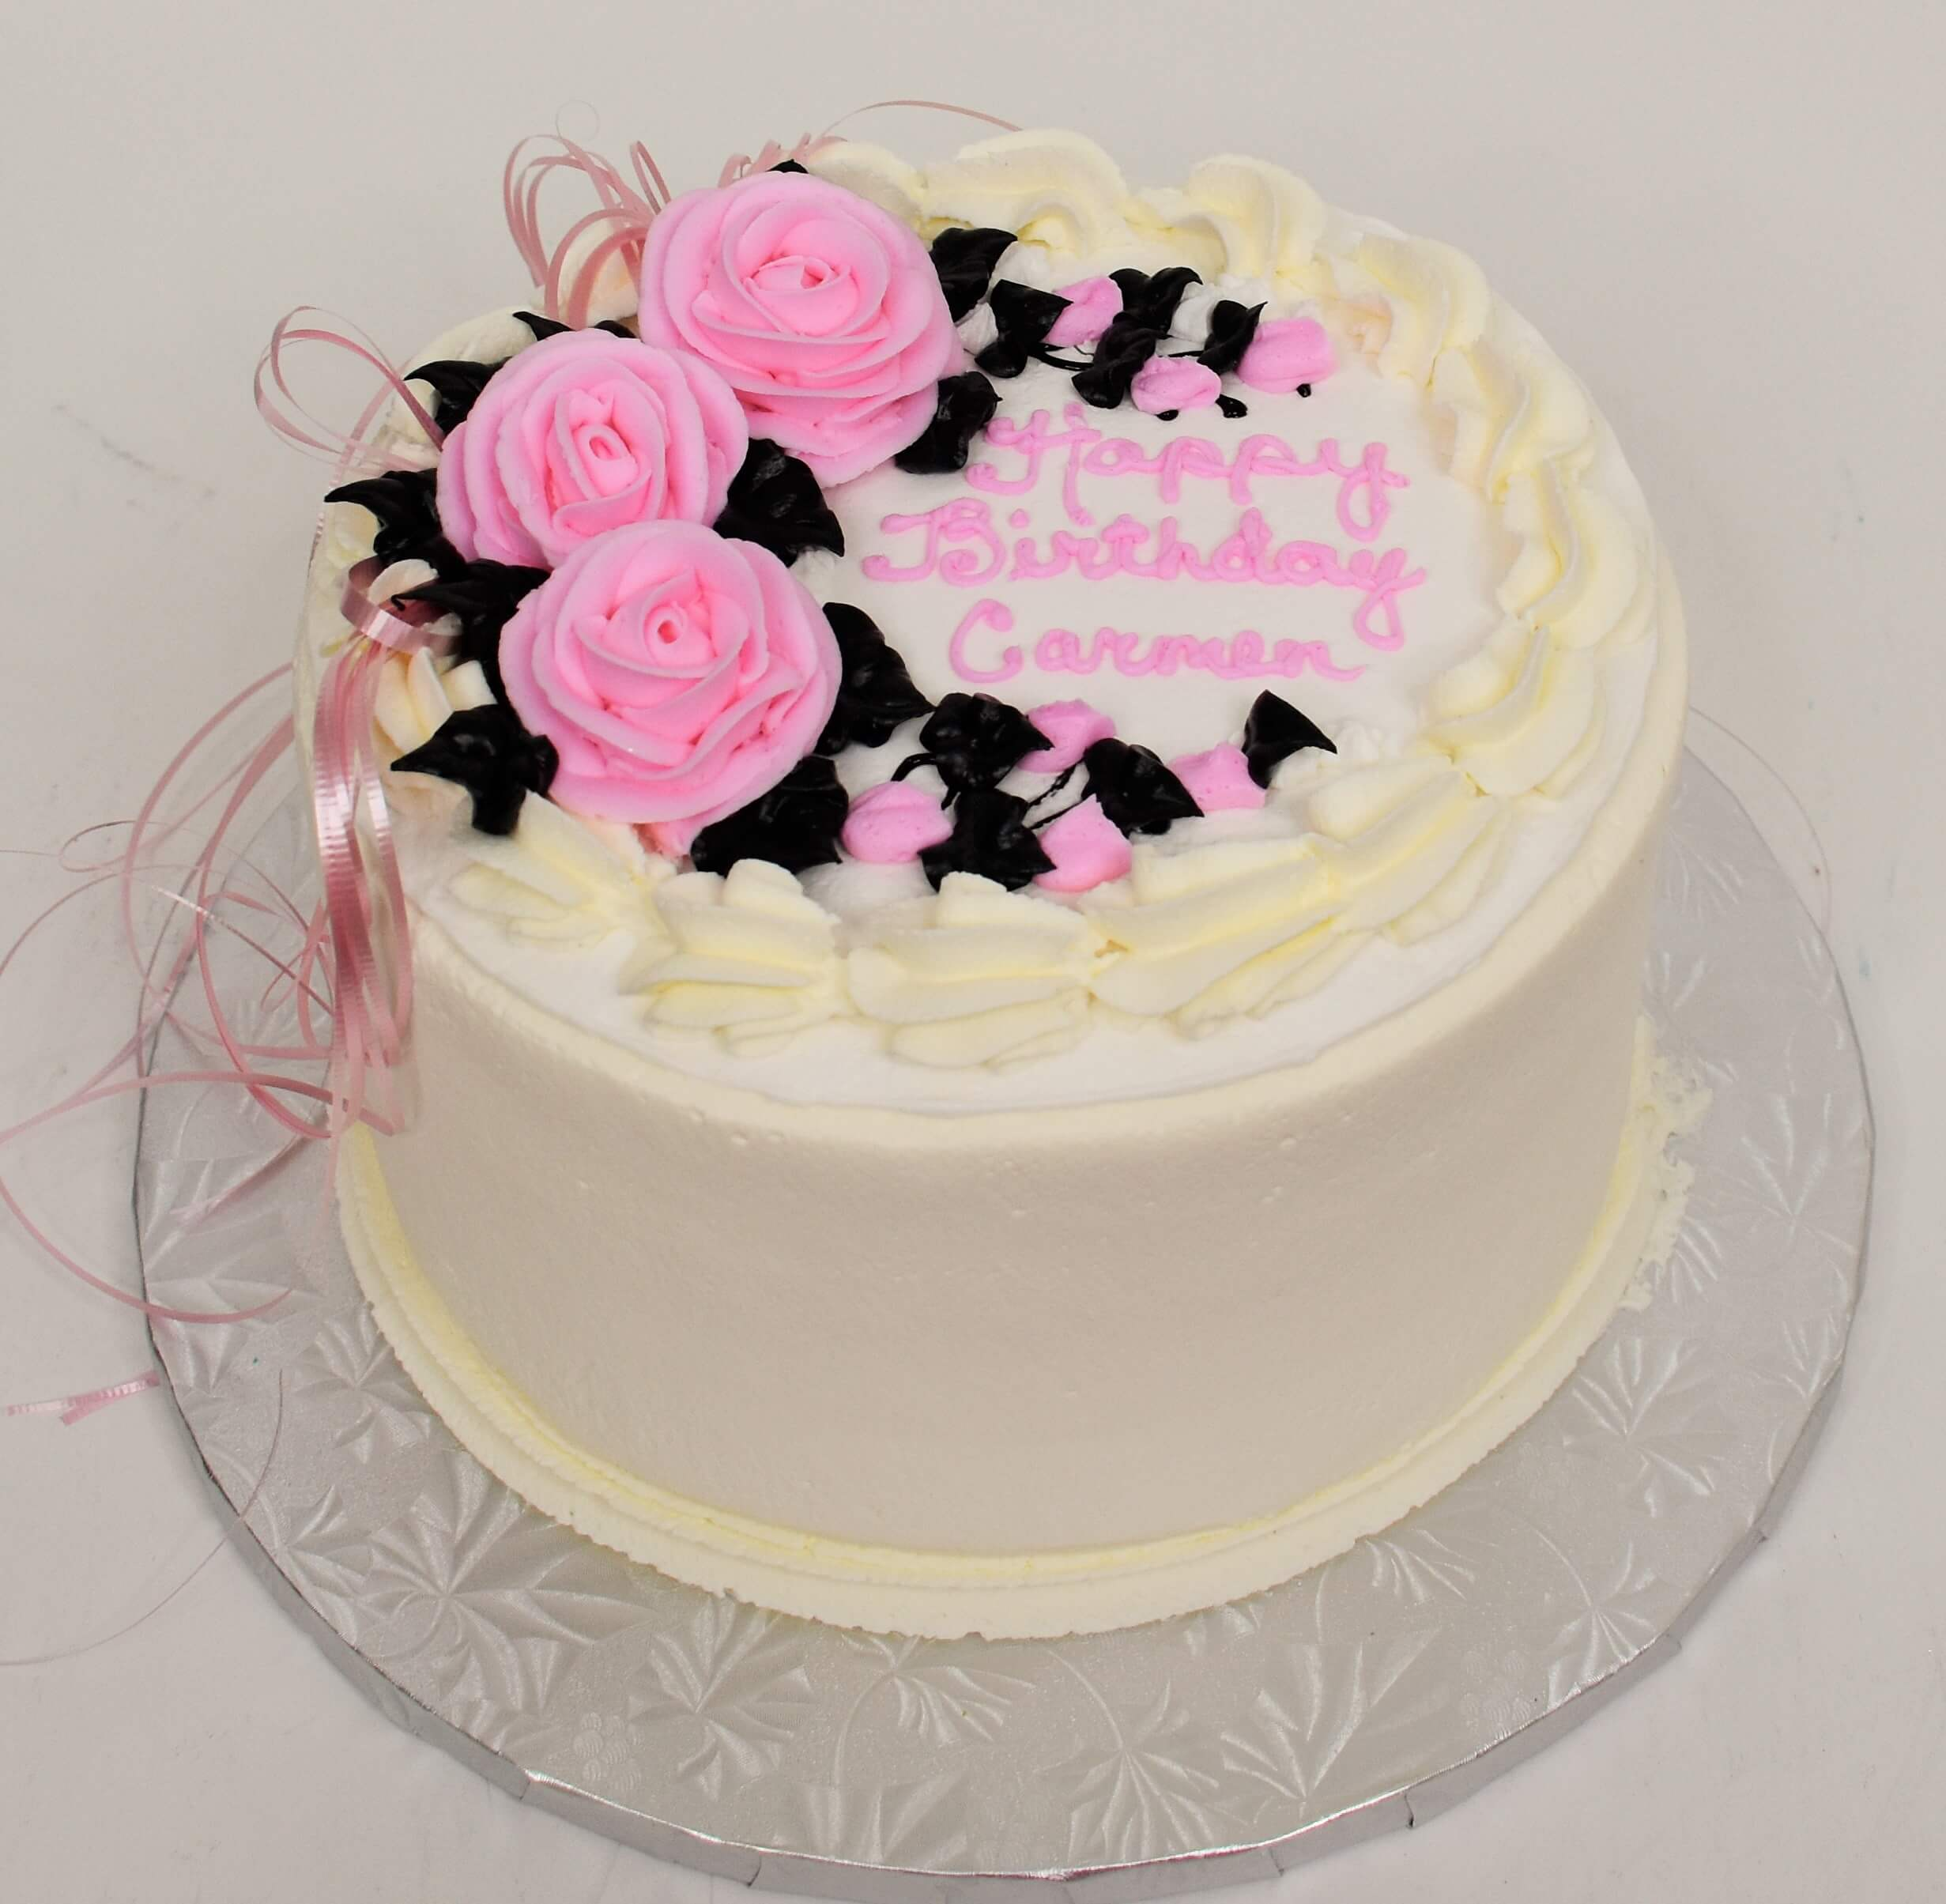 McArthur's Bakery Custom Cake with Large Pink Roses, Black Leaves, Pink Ribbon